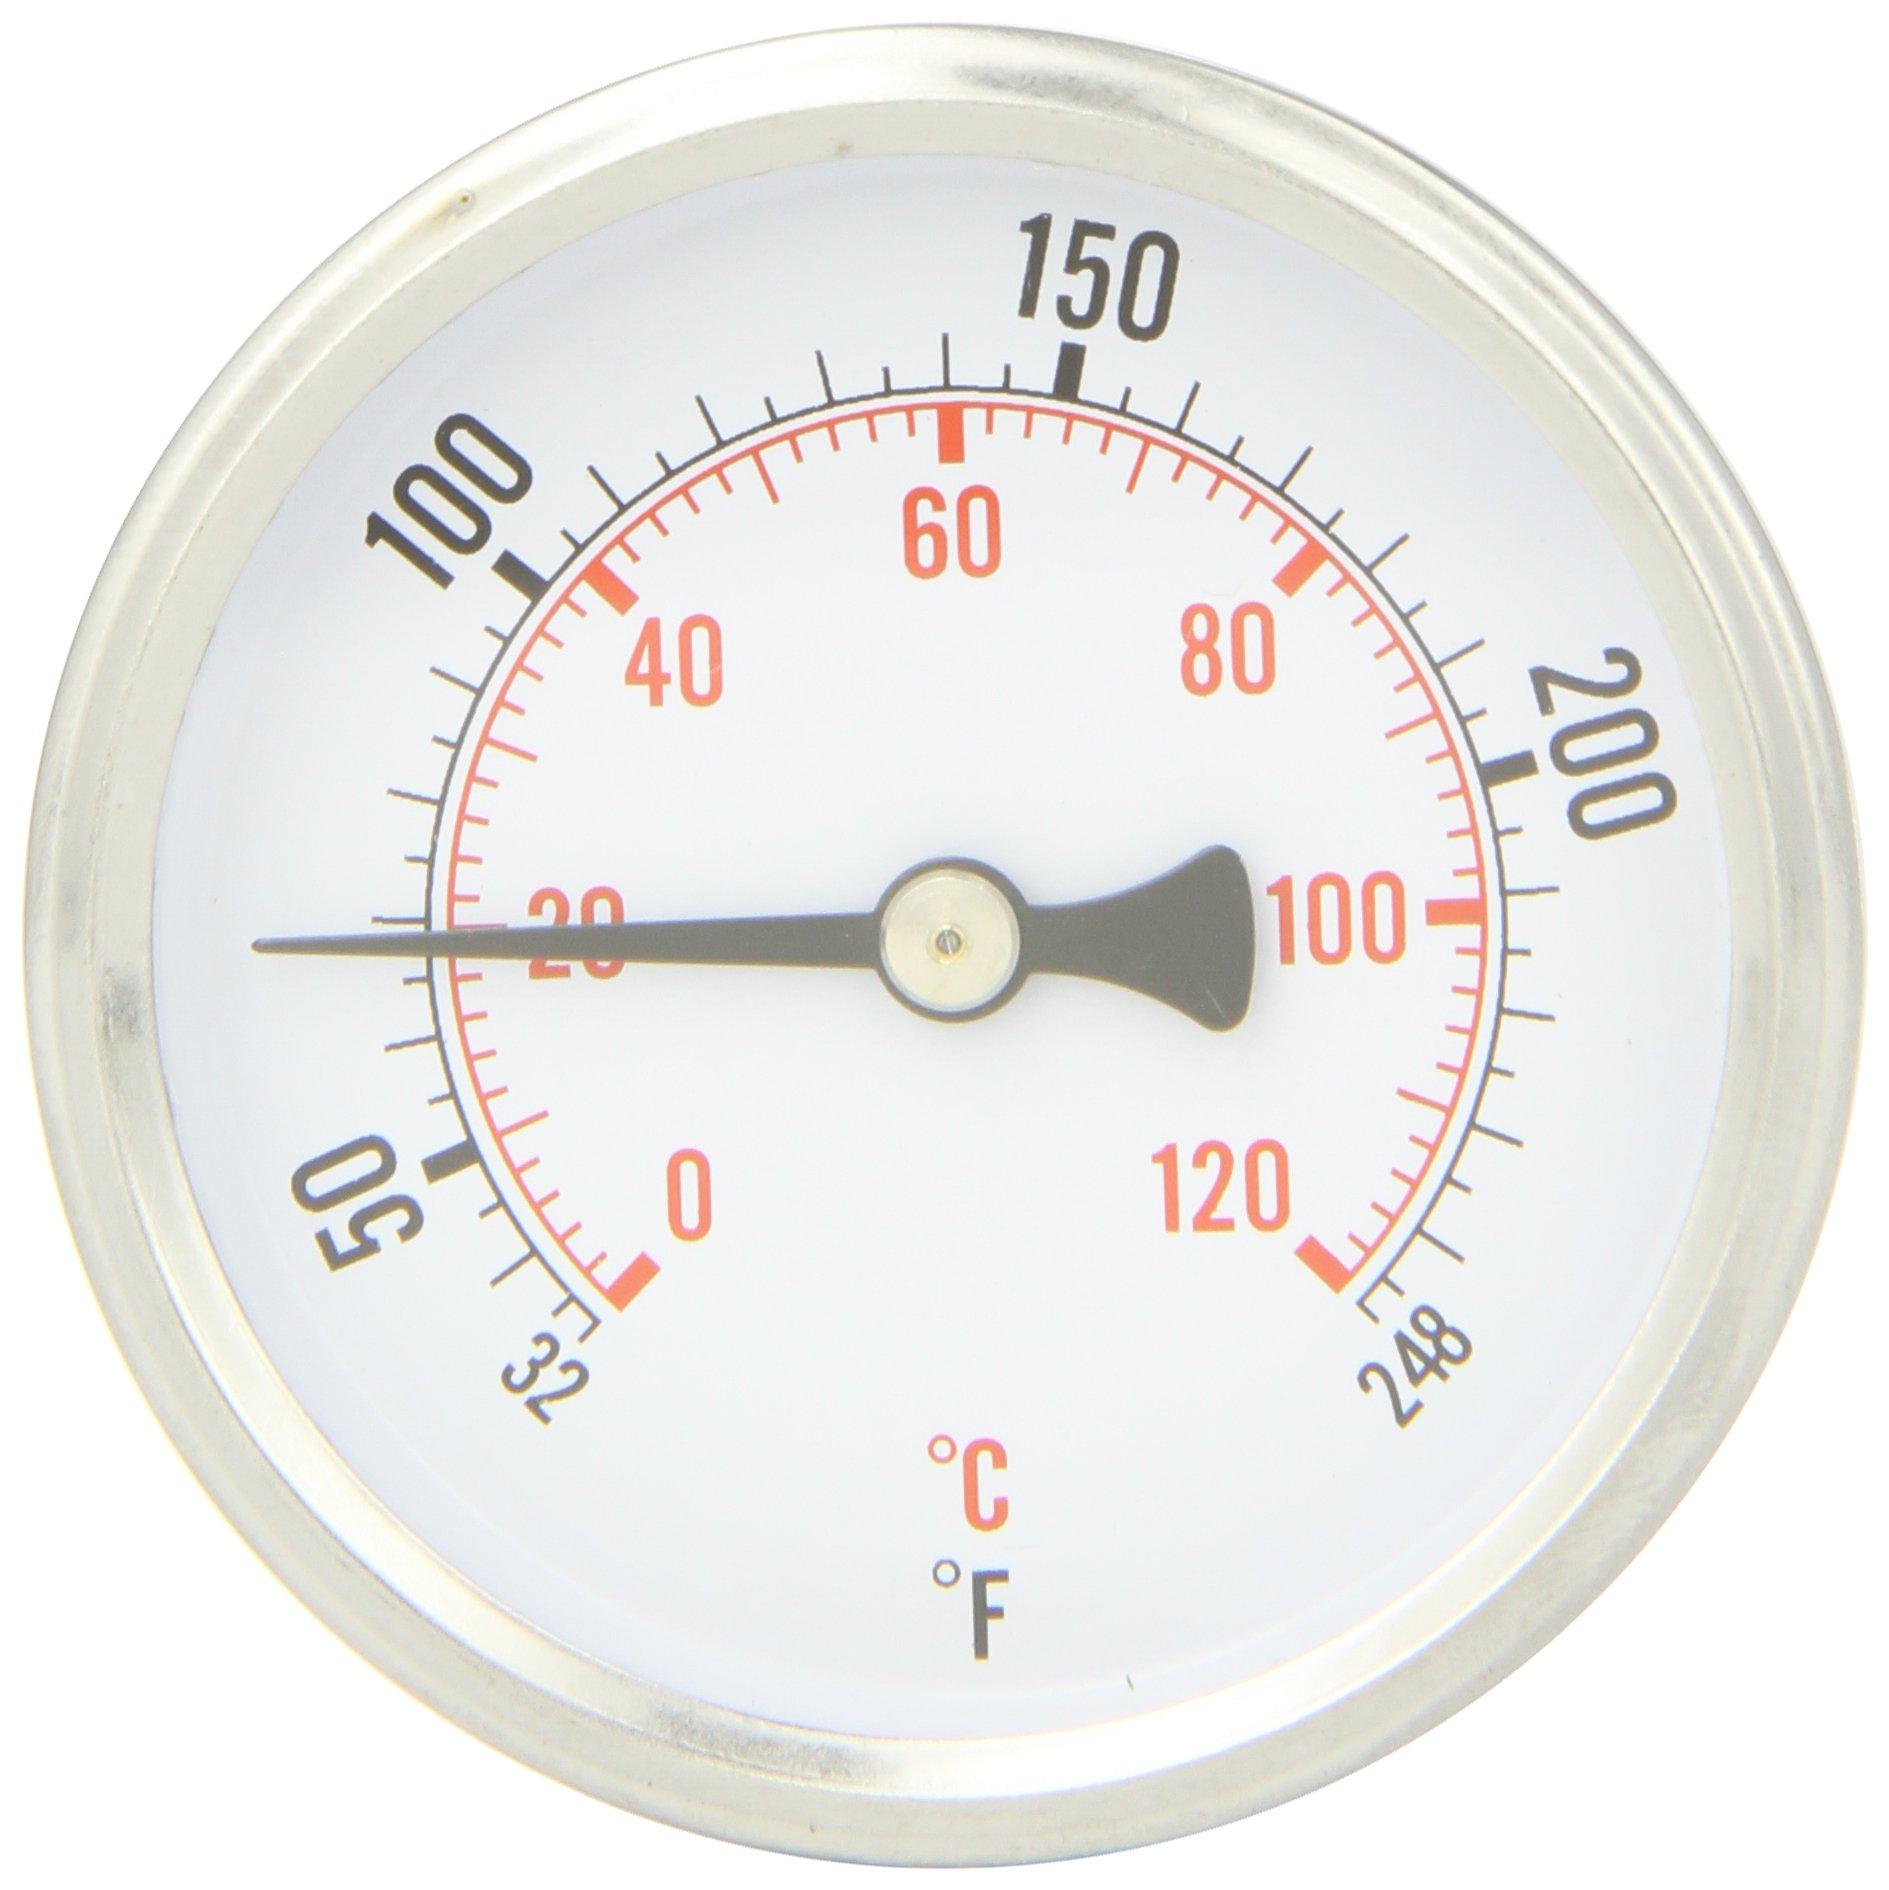 PIC Gauge B2B1-K 2.5'' Dial Size, 32/248°F & C, 1.5'' Stem Length, 1/2'' NPT Connection, Steel Case, Hot Water Thermometer